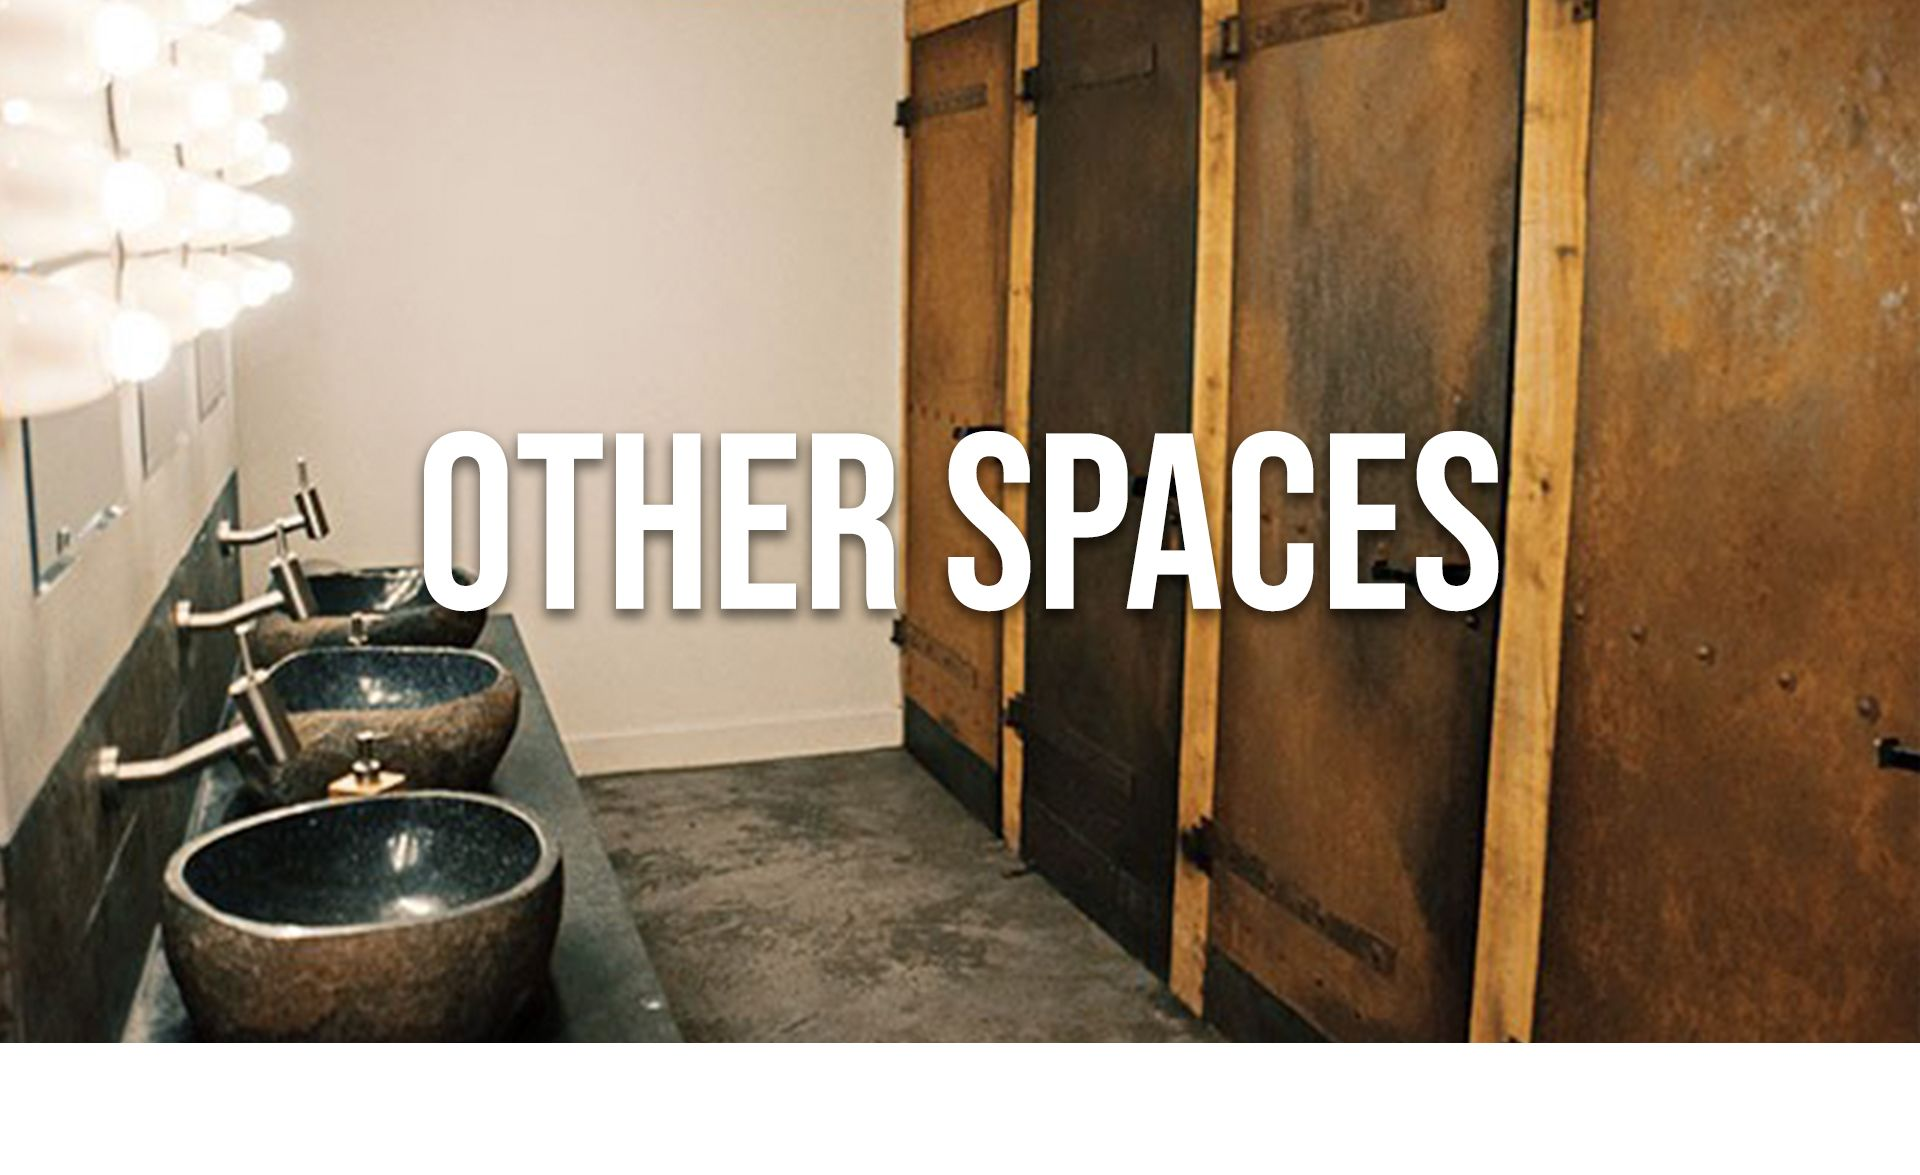 Other Spaces